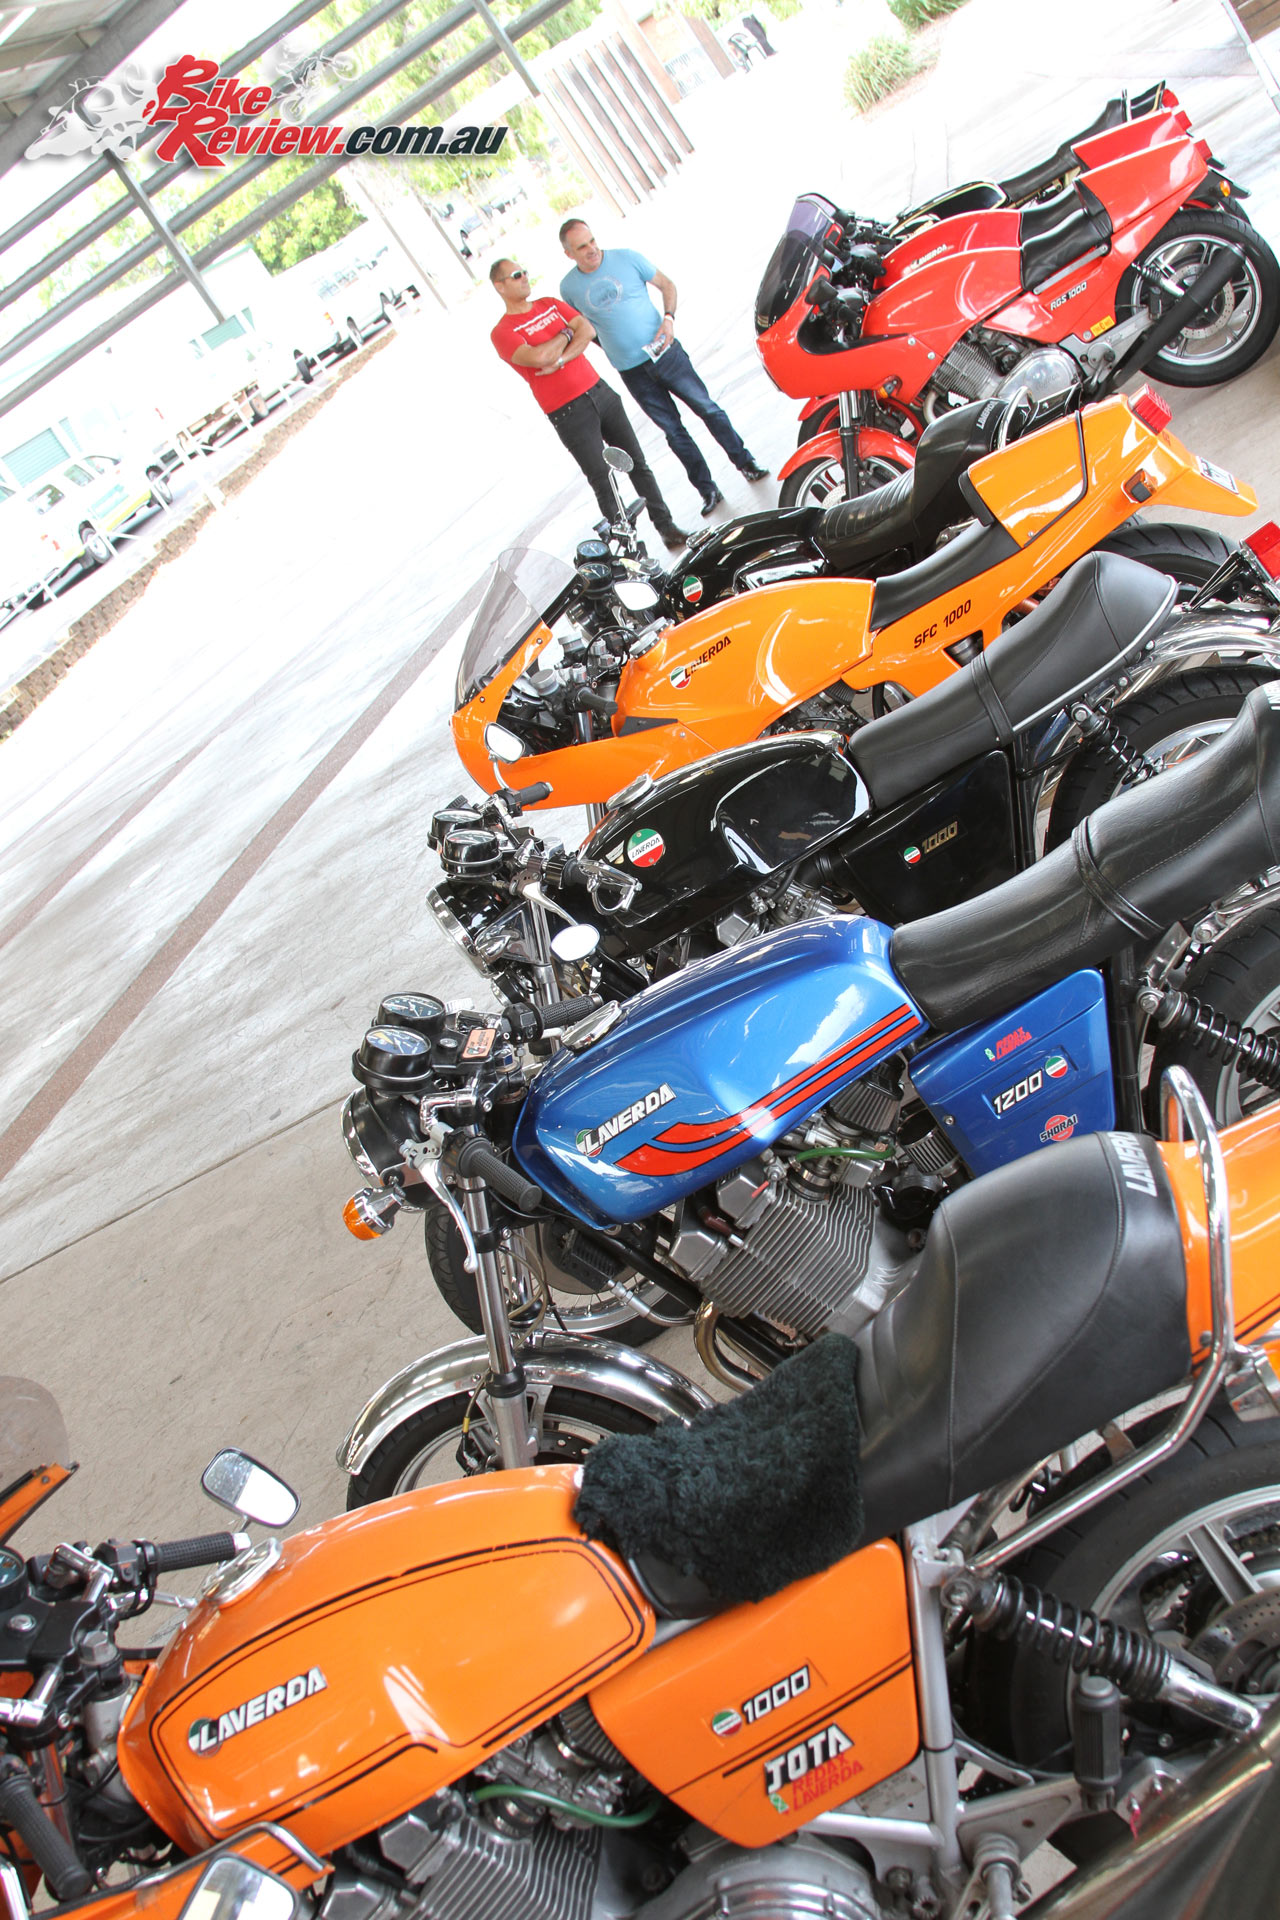 The Laverda line-up at the 2016 Concours